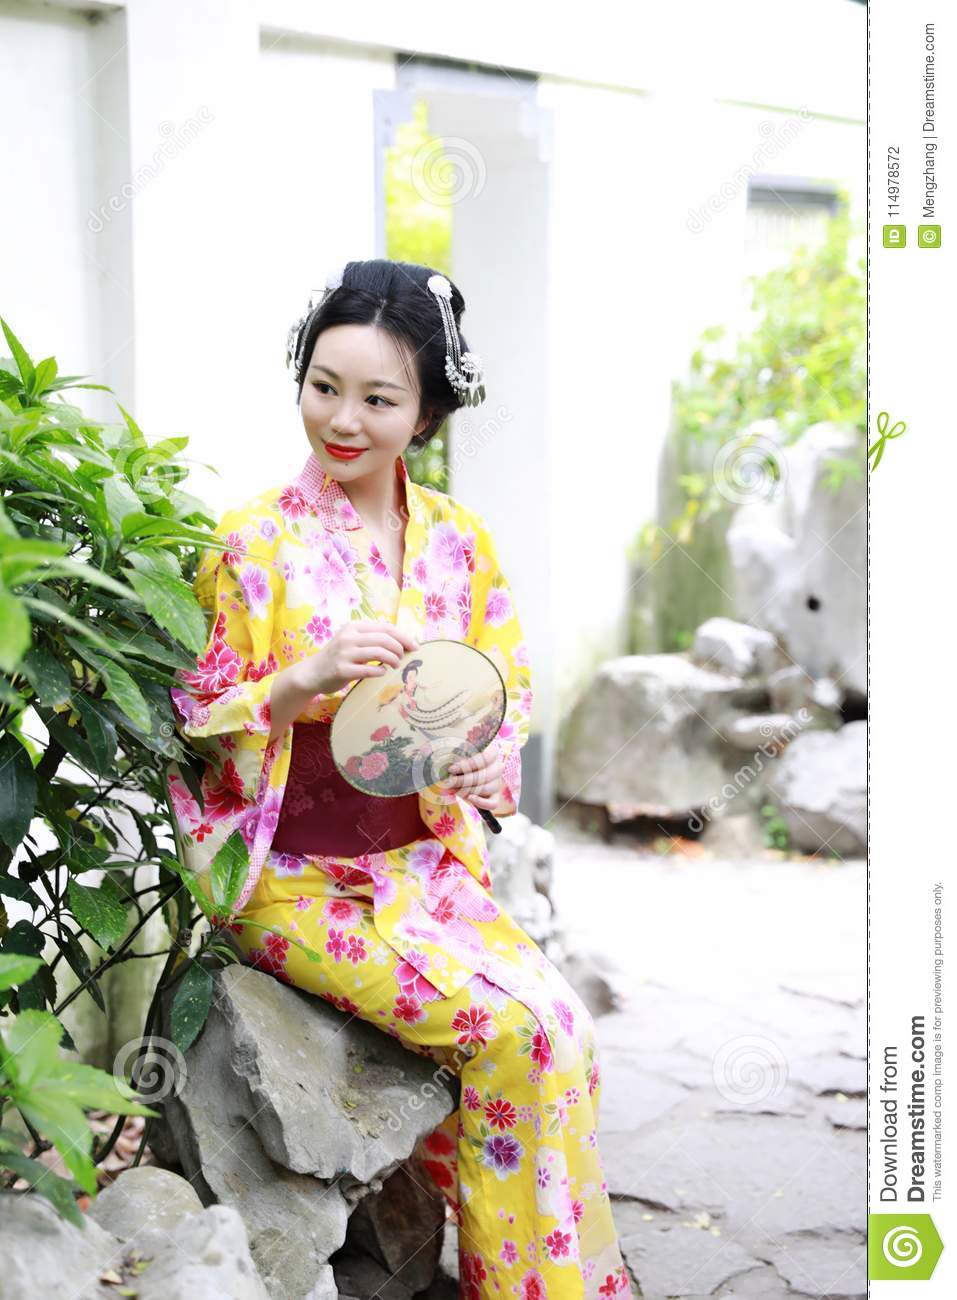 https://thumbs.dreamstime.com/z/traditional-asian-japanese-beautiful-woman-wears-kimono-fan-hand-smiling-playing-outdoor-spring-garden-japanese-woman-114978572.jpg